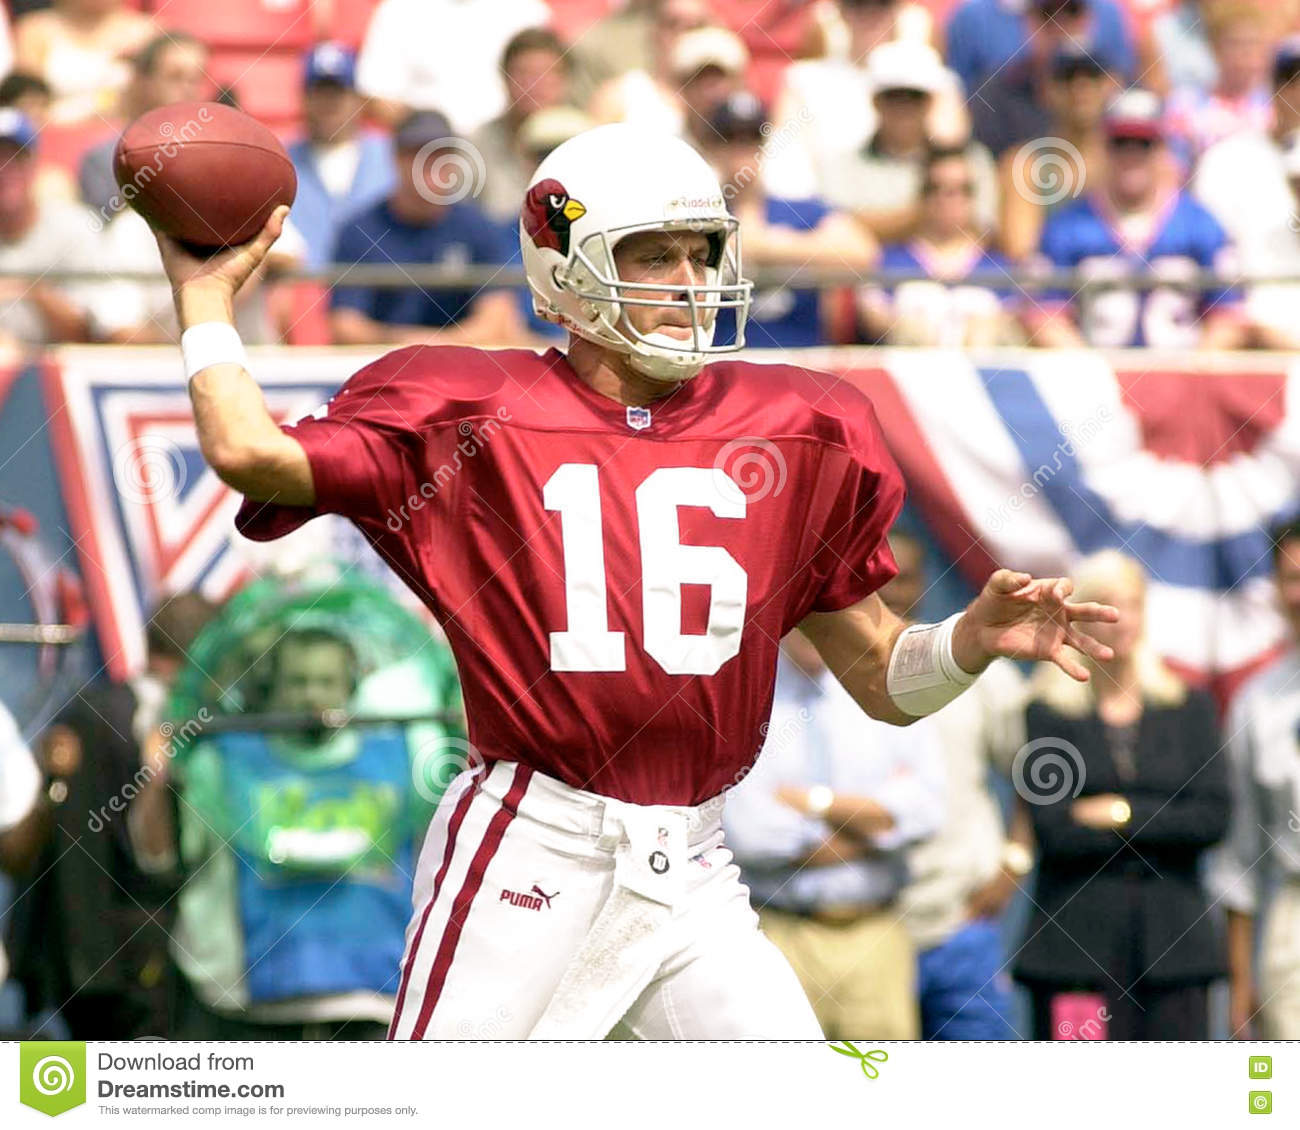 bb5d22e2bf7 Quarterback Jake Plummer of the Arizona Cardinals in game action against  the New York Giants. The New York Giants went on to defeat the Arizona  Cardinals by ...